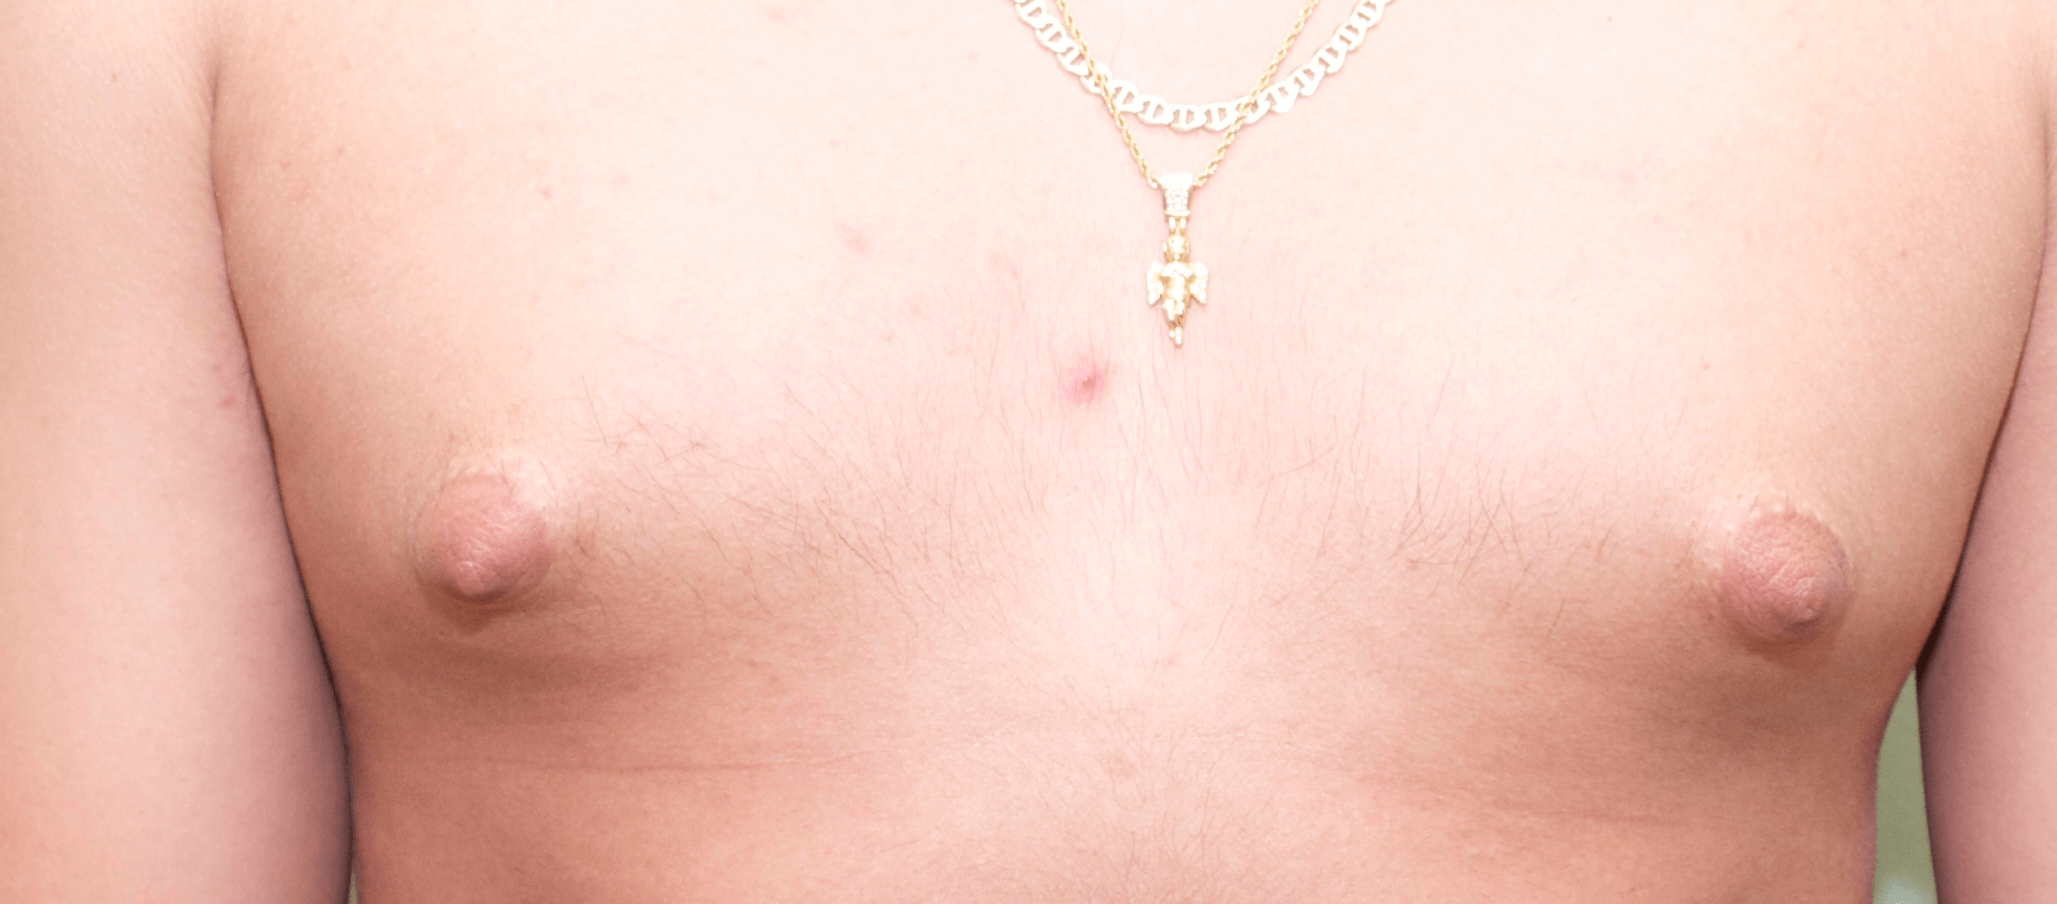 Gynecomastia Frontal View Before